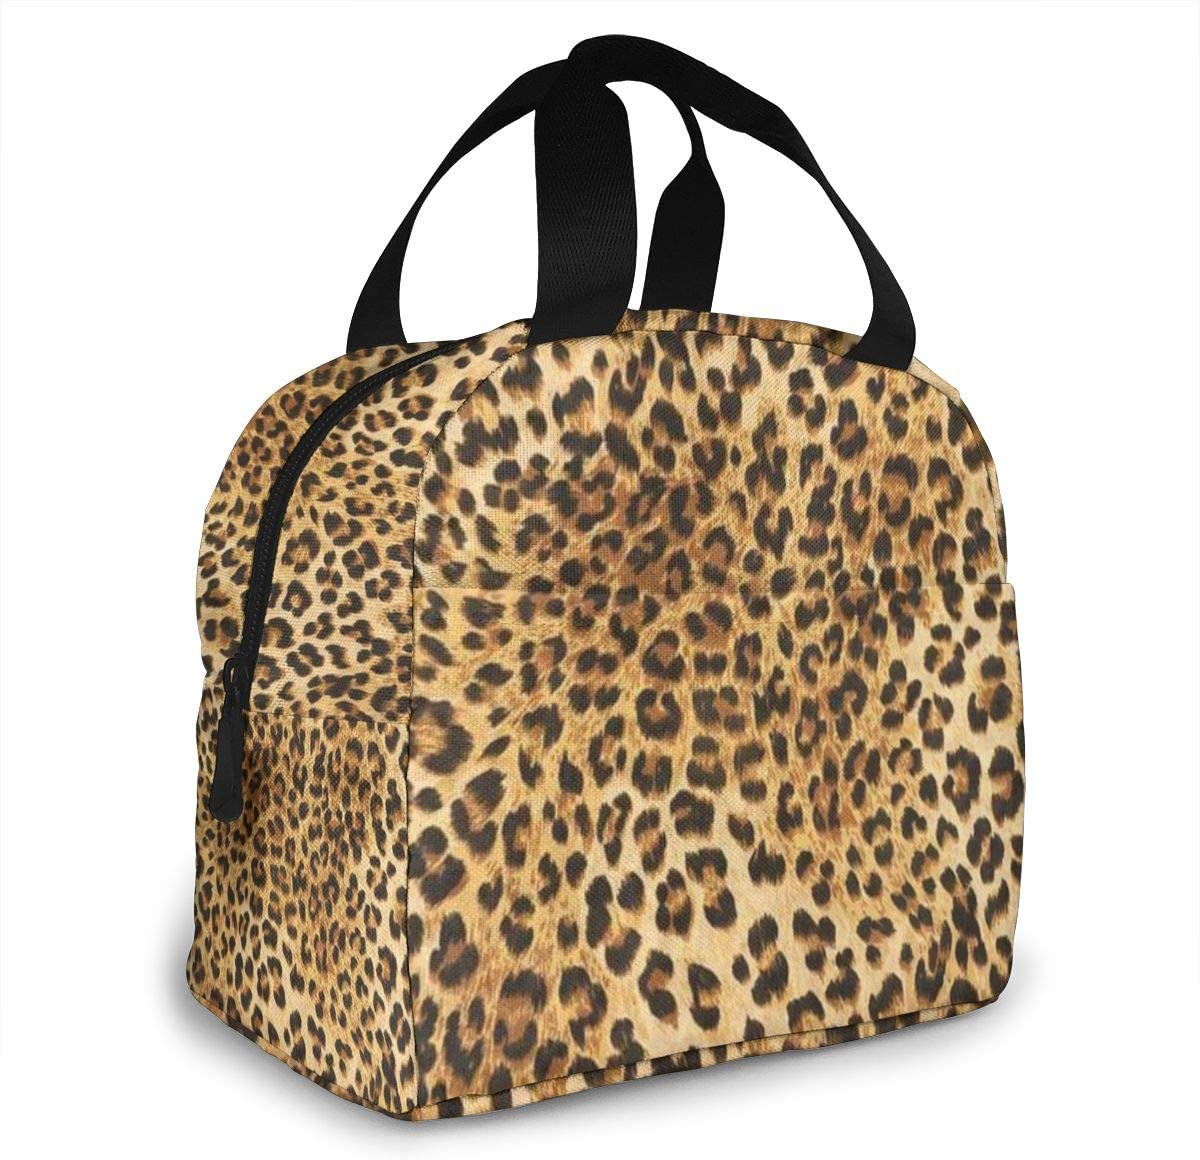 Portable Lunch Tote 70% OFF Outlet Max 49% OFF Bag Leopard Skins Wild Colorful Animal Print